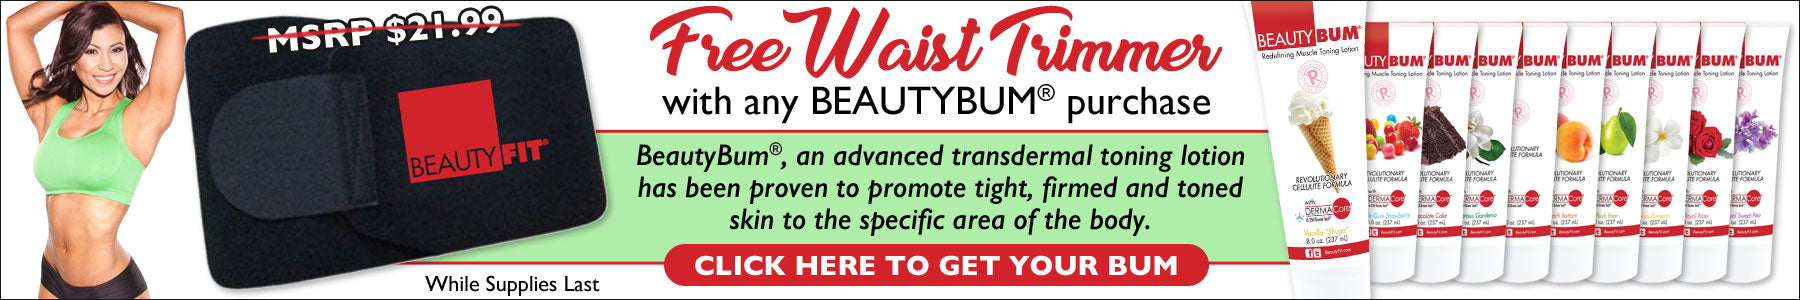 FREE Waist Trimmer with BeautyBum® Purchase